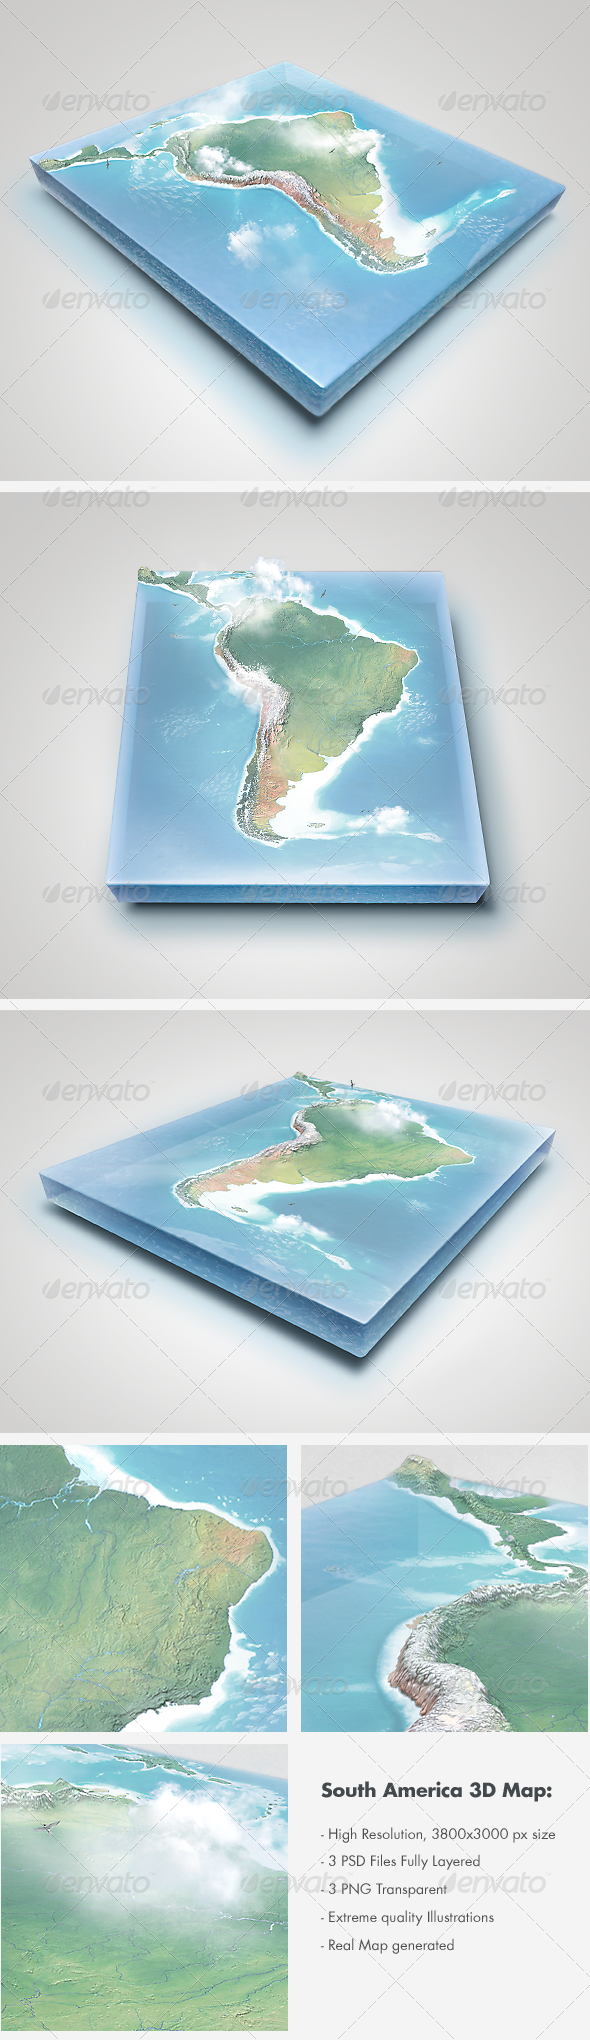 Realistic South America 3D Map - Layered - Miscellaneous Graphics